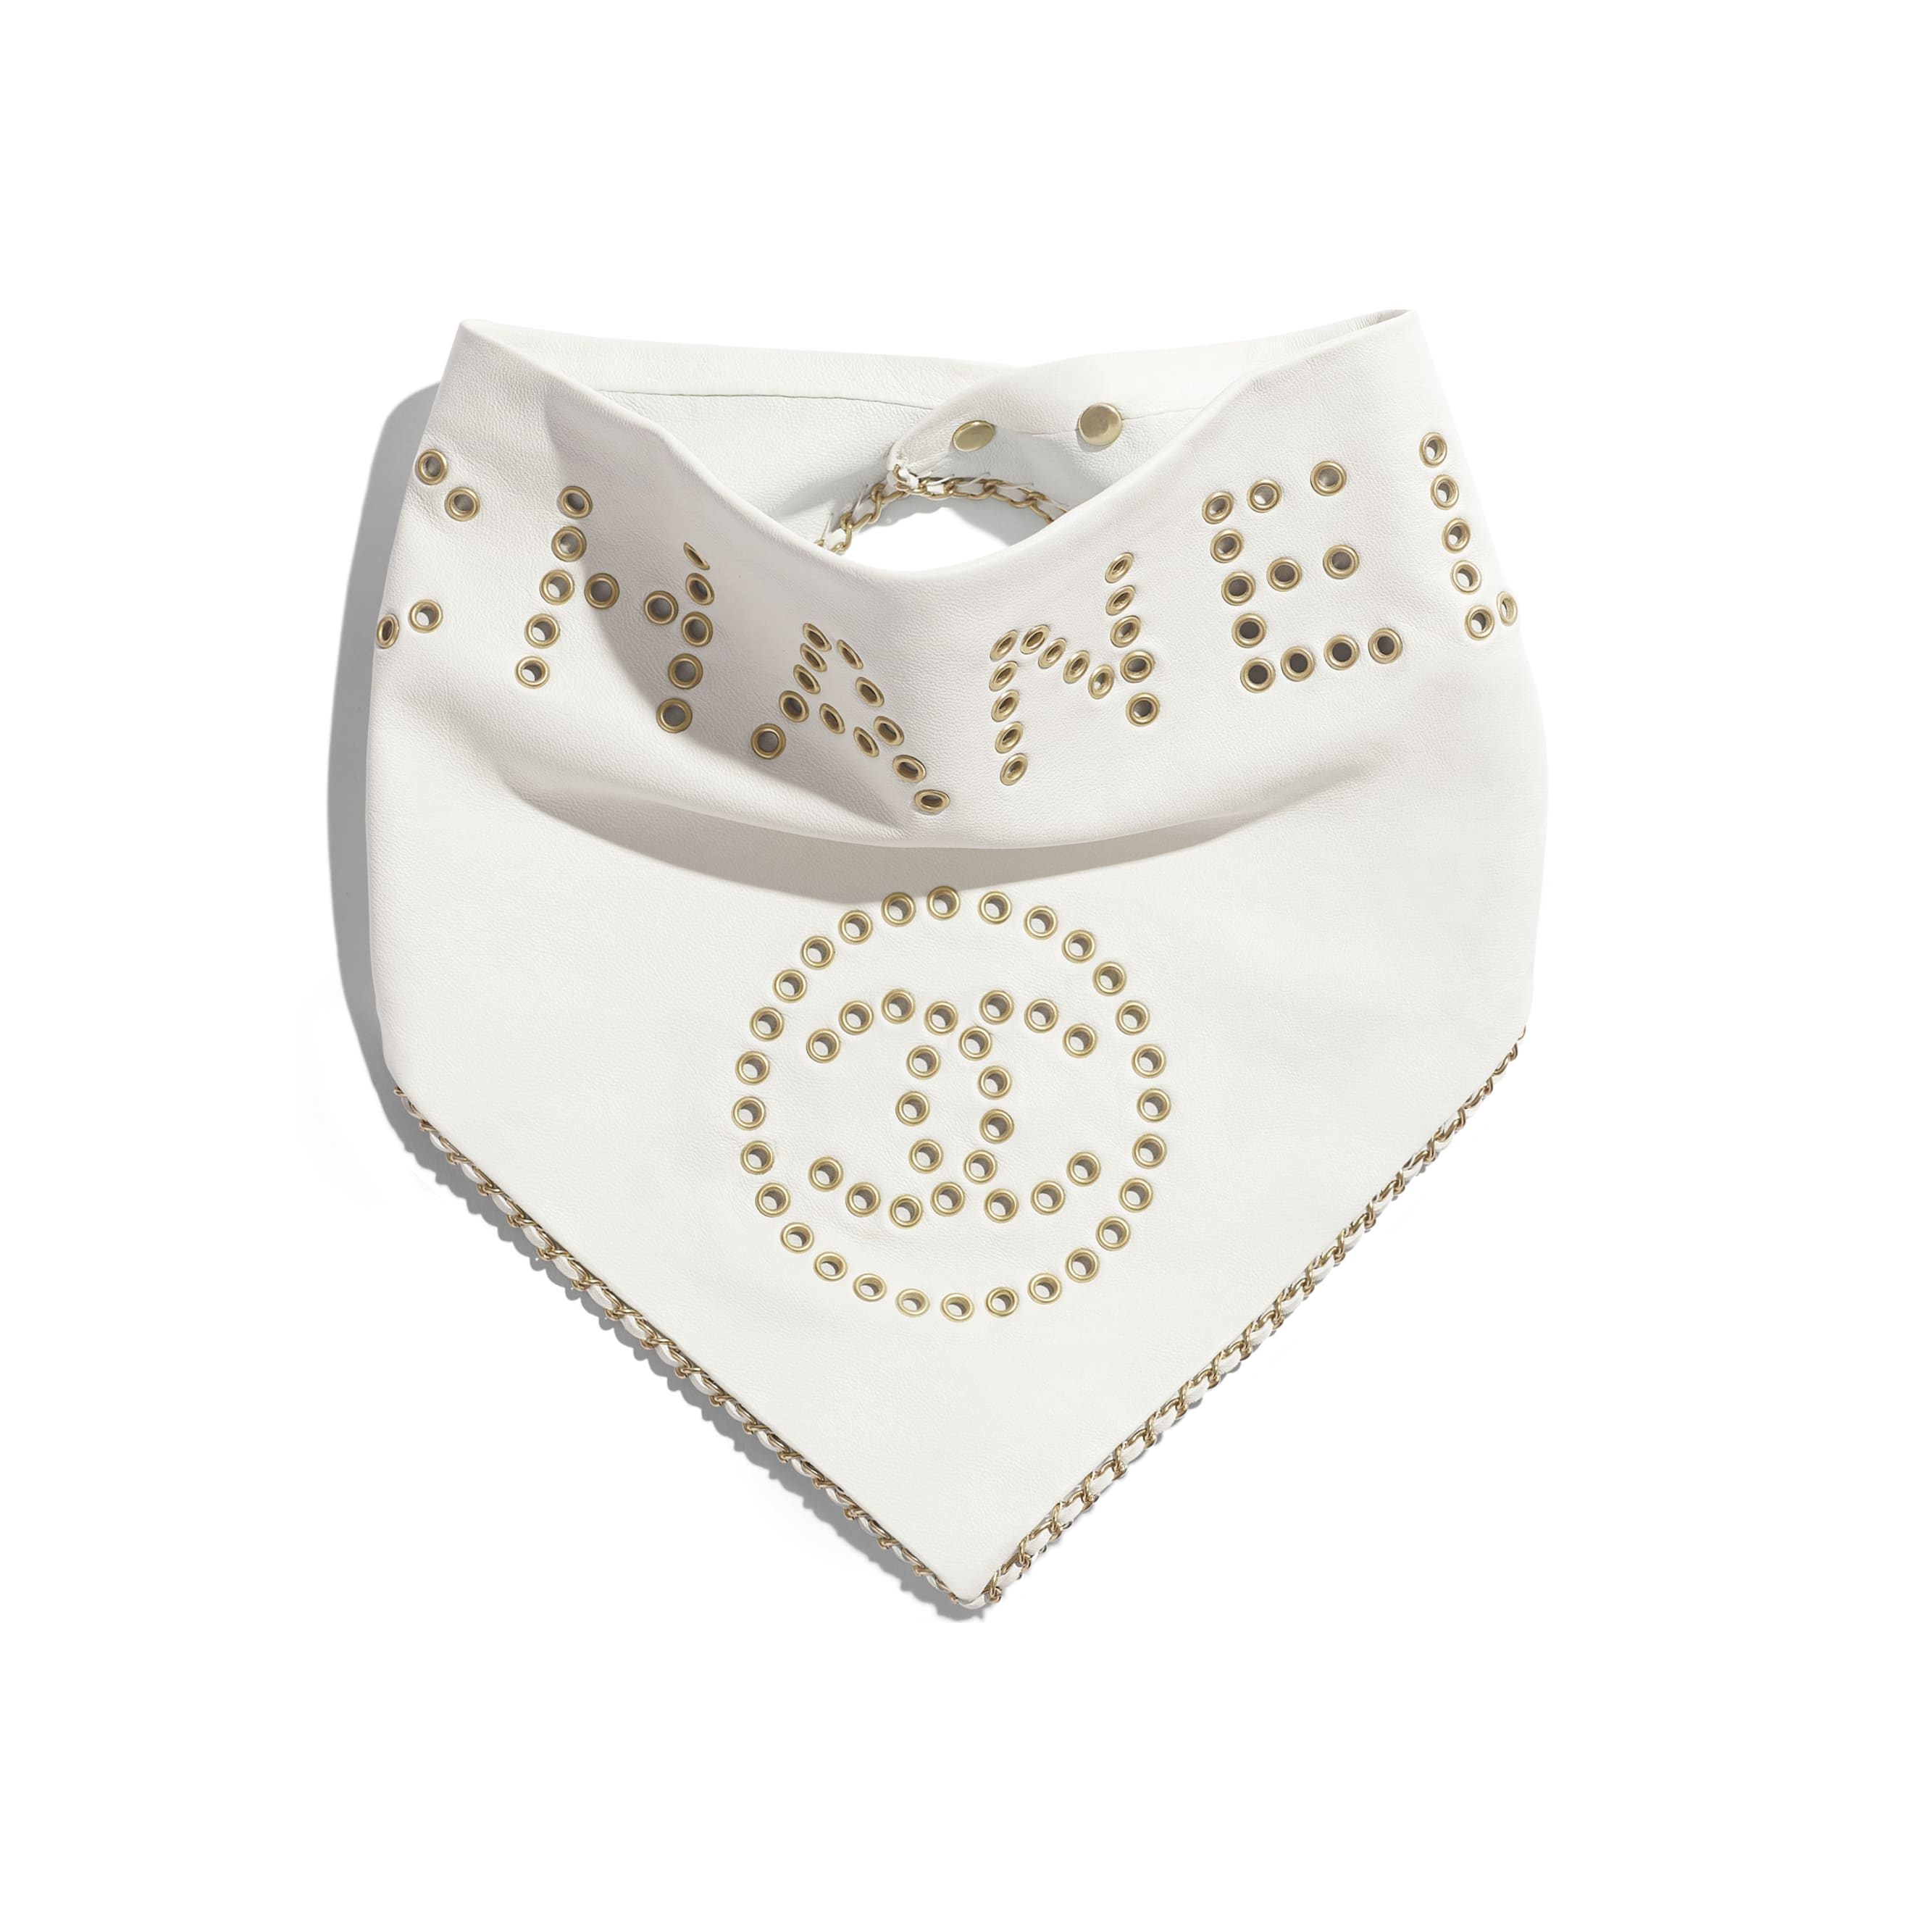 Bandana - White - Lambskin, Calfskin & Gold-Tone Metal - Default view - see standard sized version